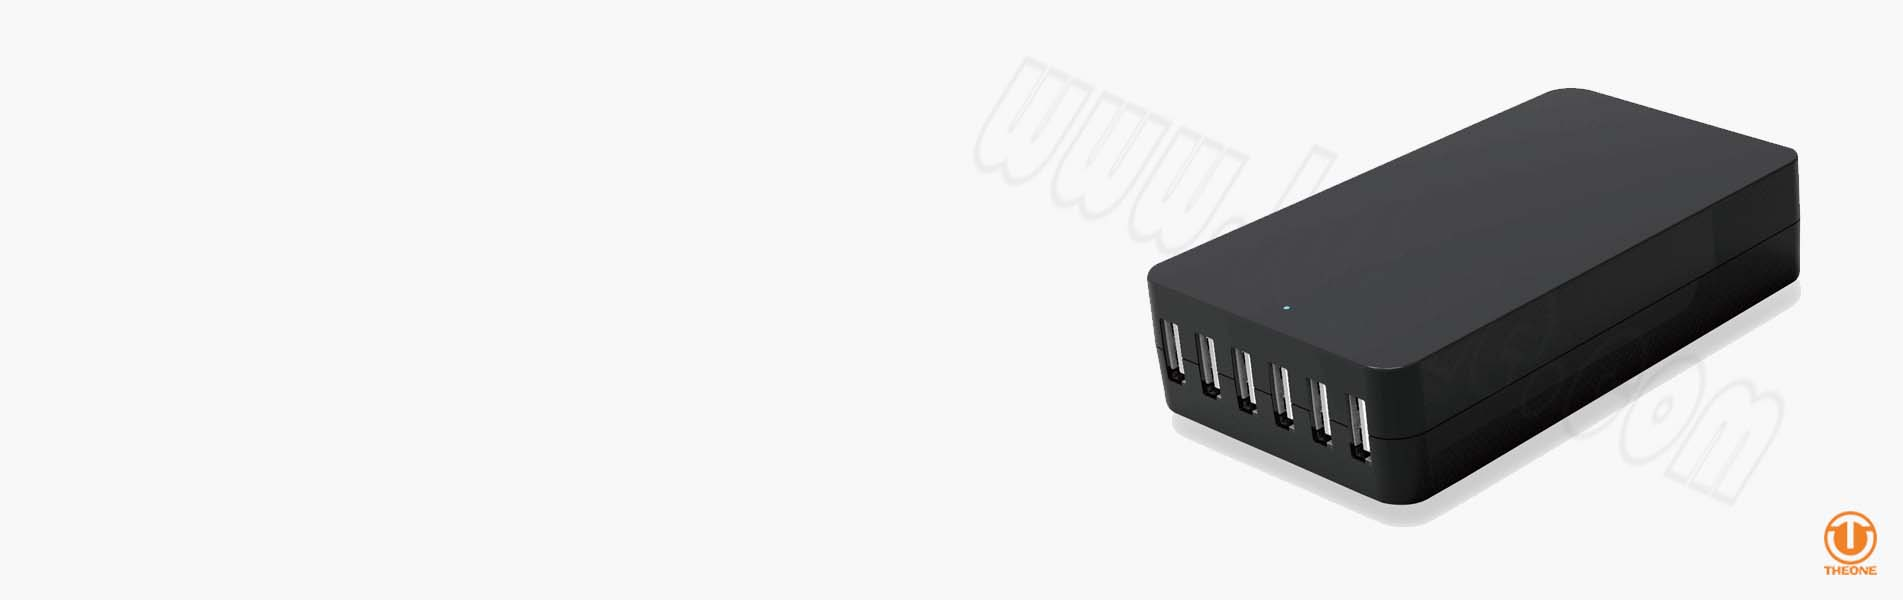 tw06a2-banner multi-usb quick charger wall charger